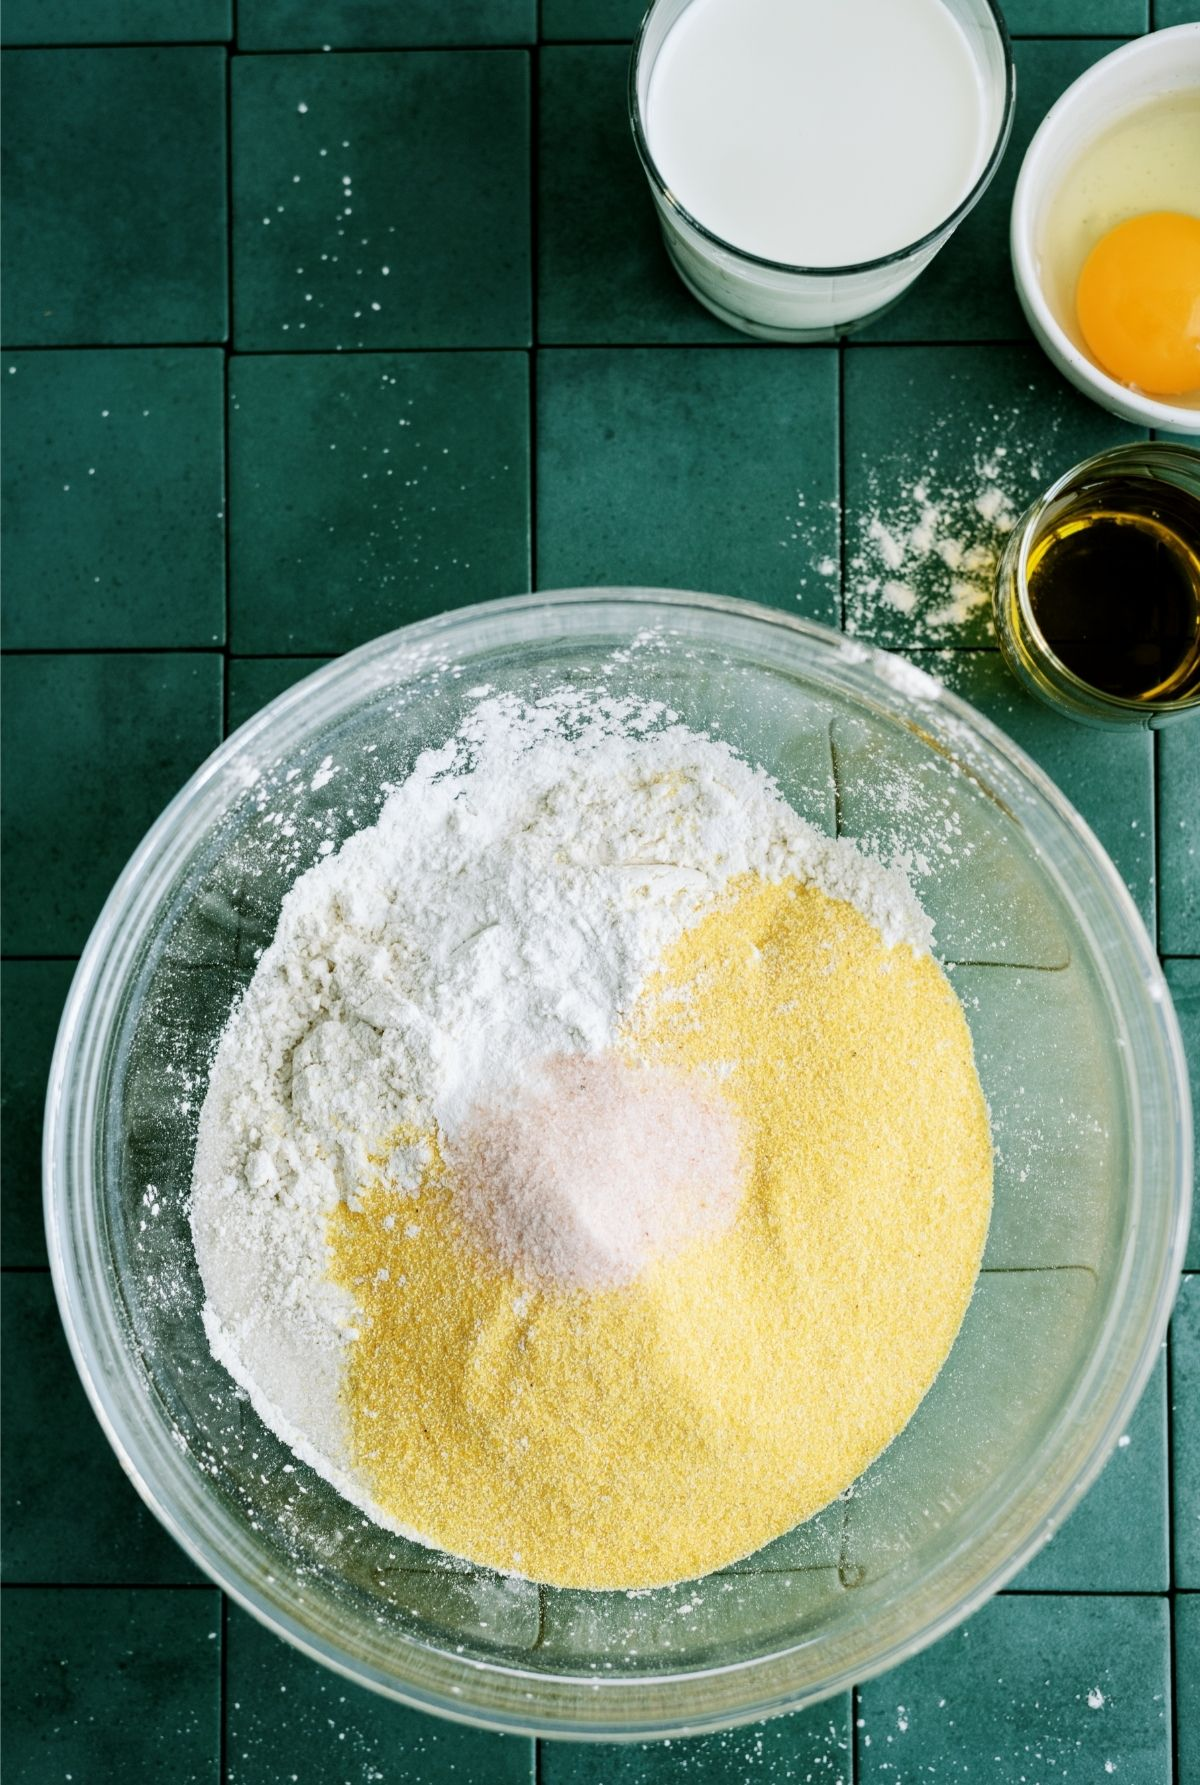 Dry ingredients for Easy Homemade Cornbread mixed in a glass bowl